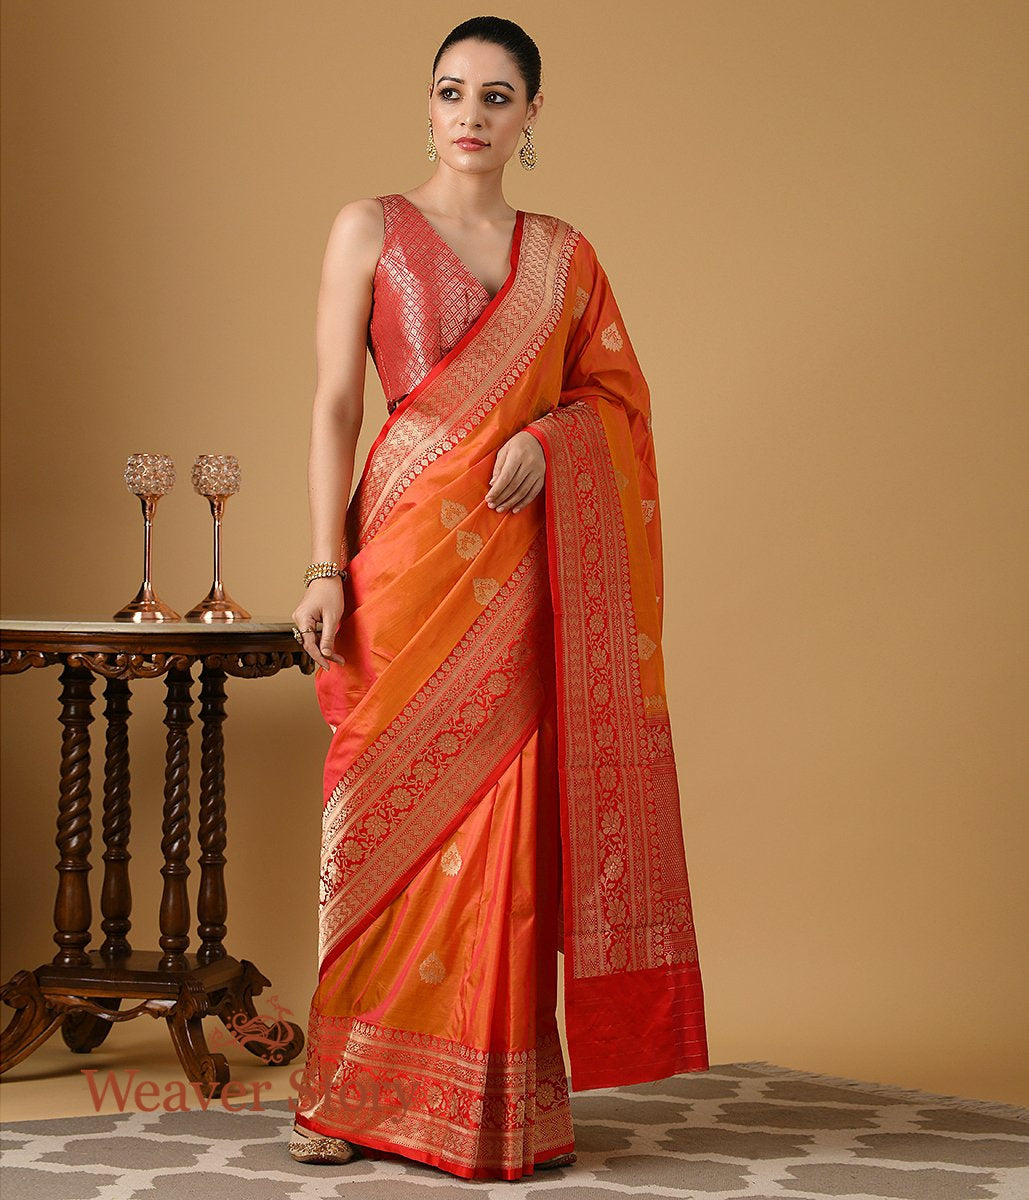 Handwoven Orange Katan Silk Banarasi with Red Border